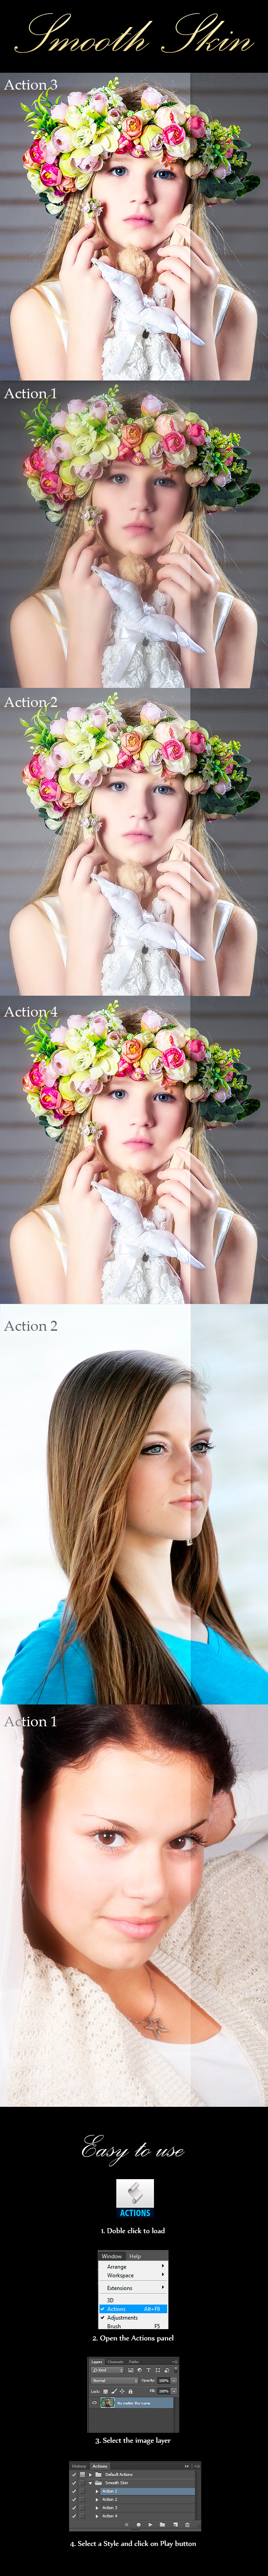 Smooth Skin (4 Actions) - Photo Effects Actions